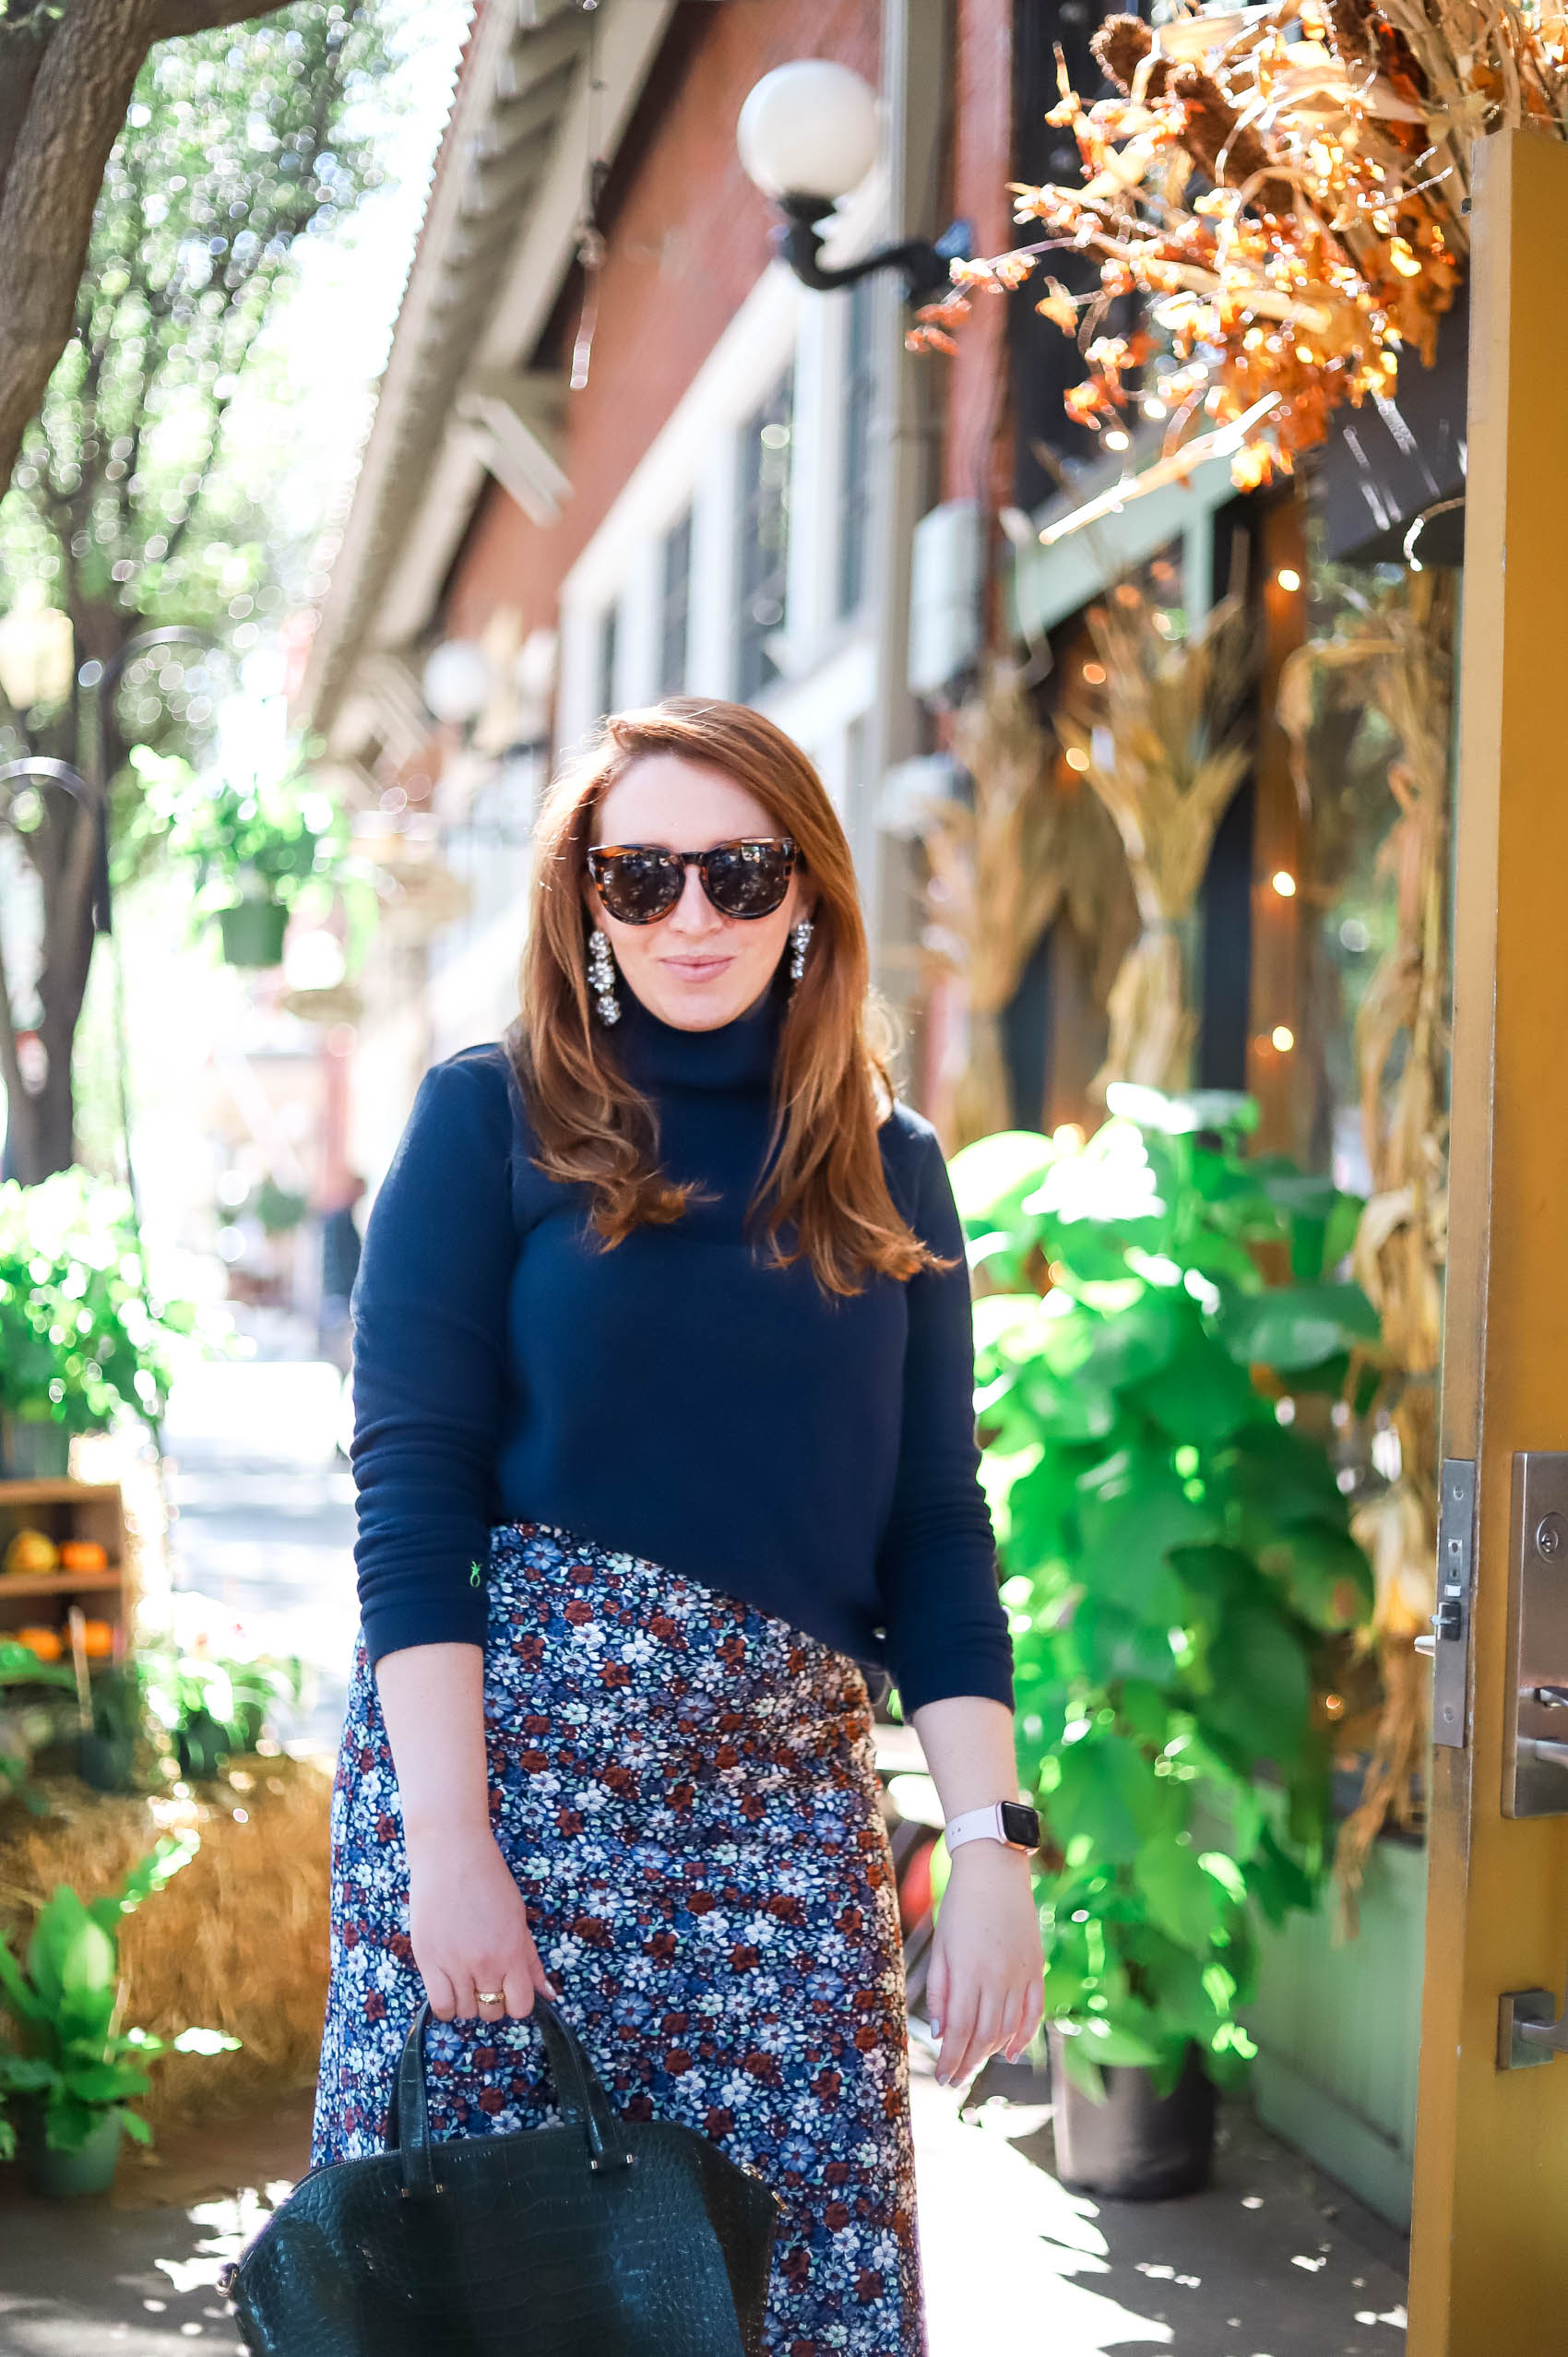 A blue outfit to celebrate the outcome of the 2020 election and thoughts on what a woman in the white house means | Fall outfit inspiration